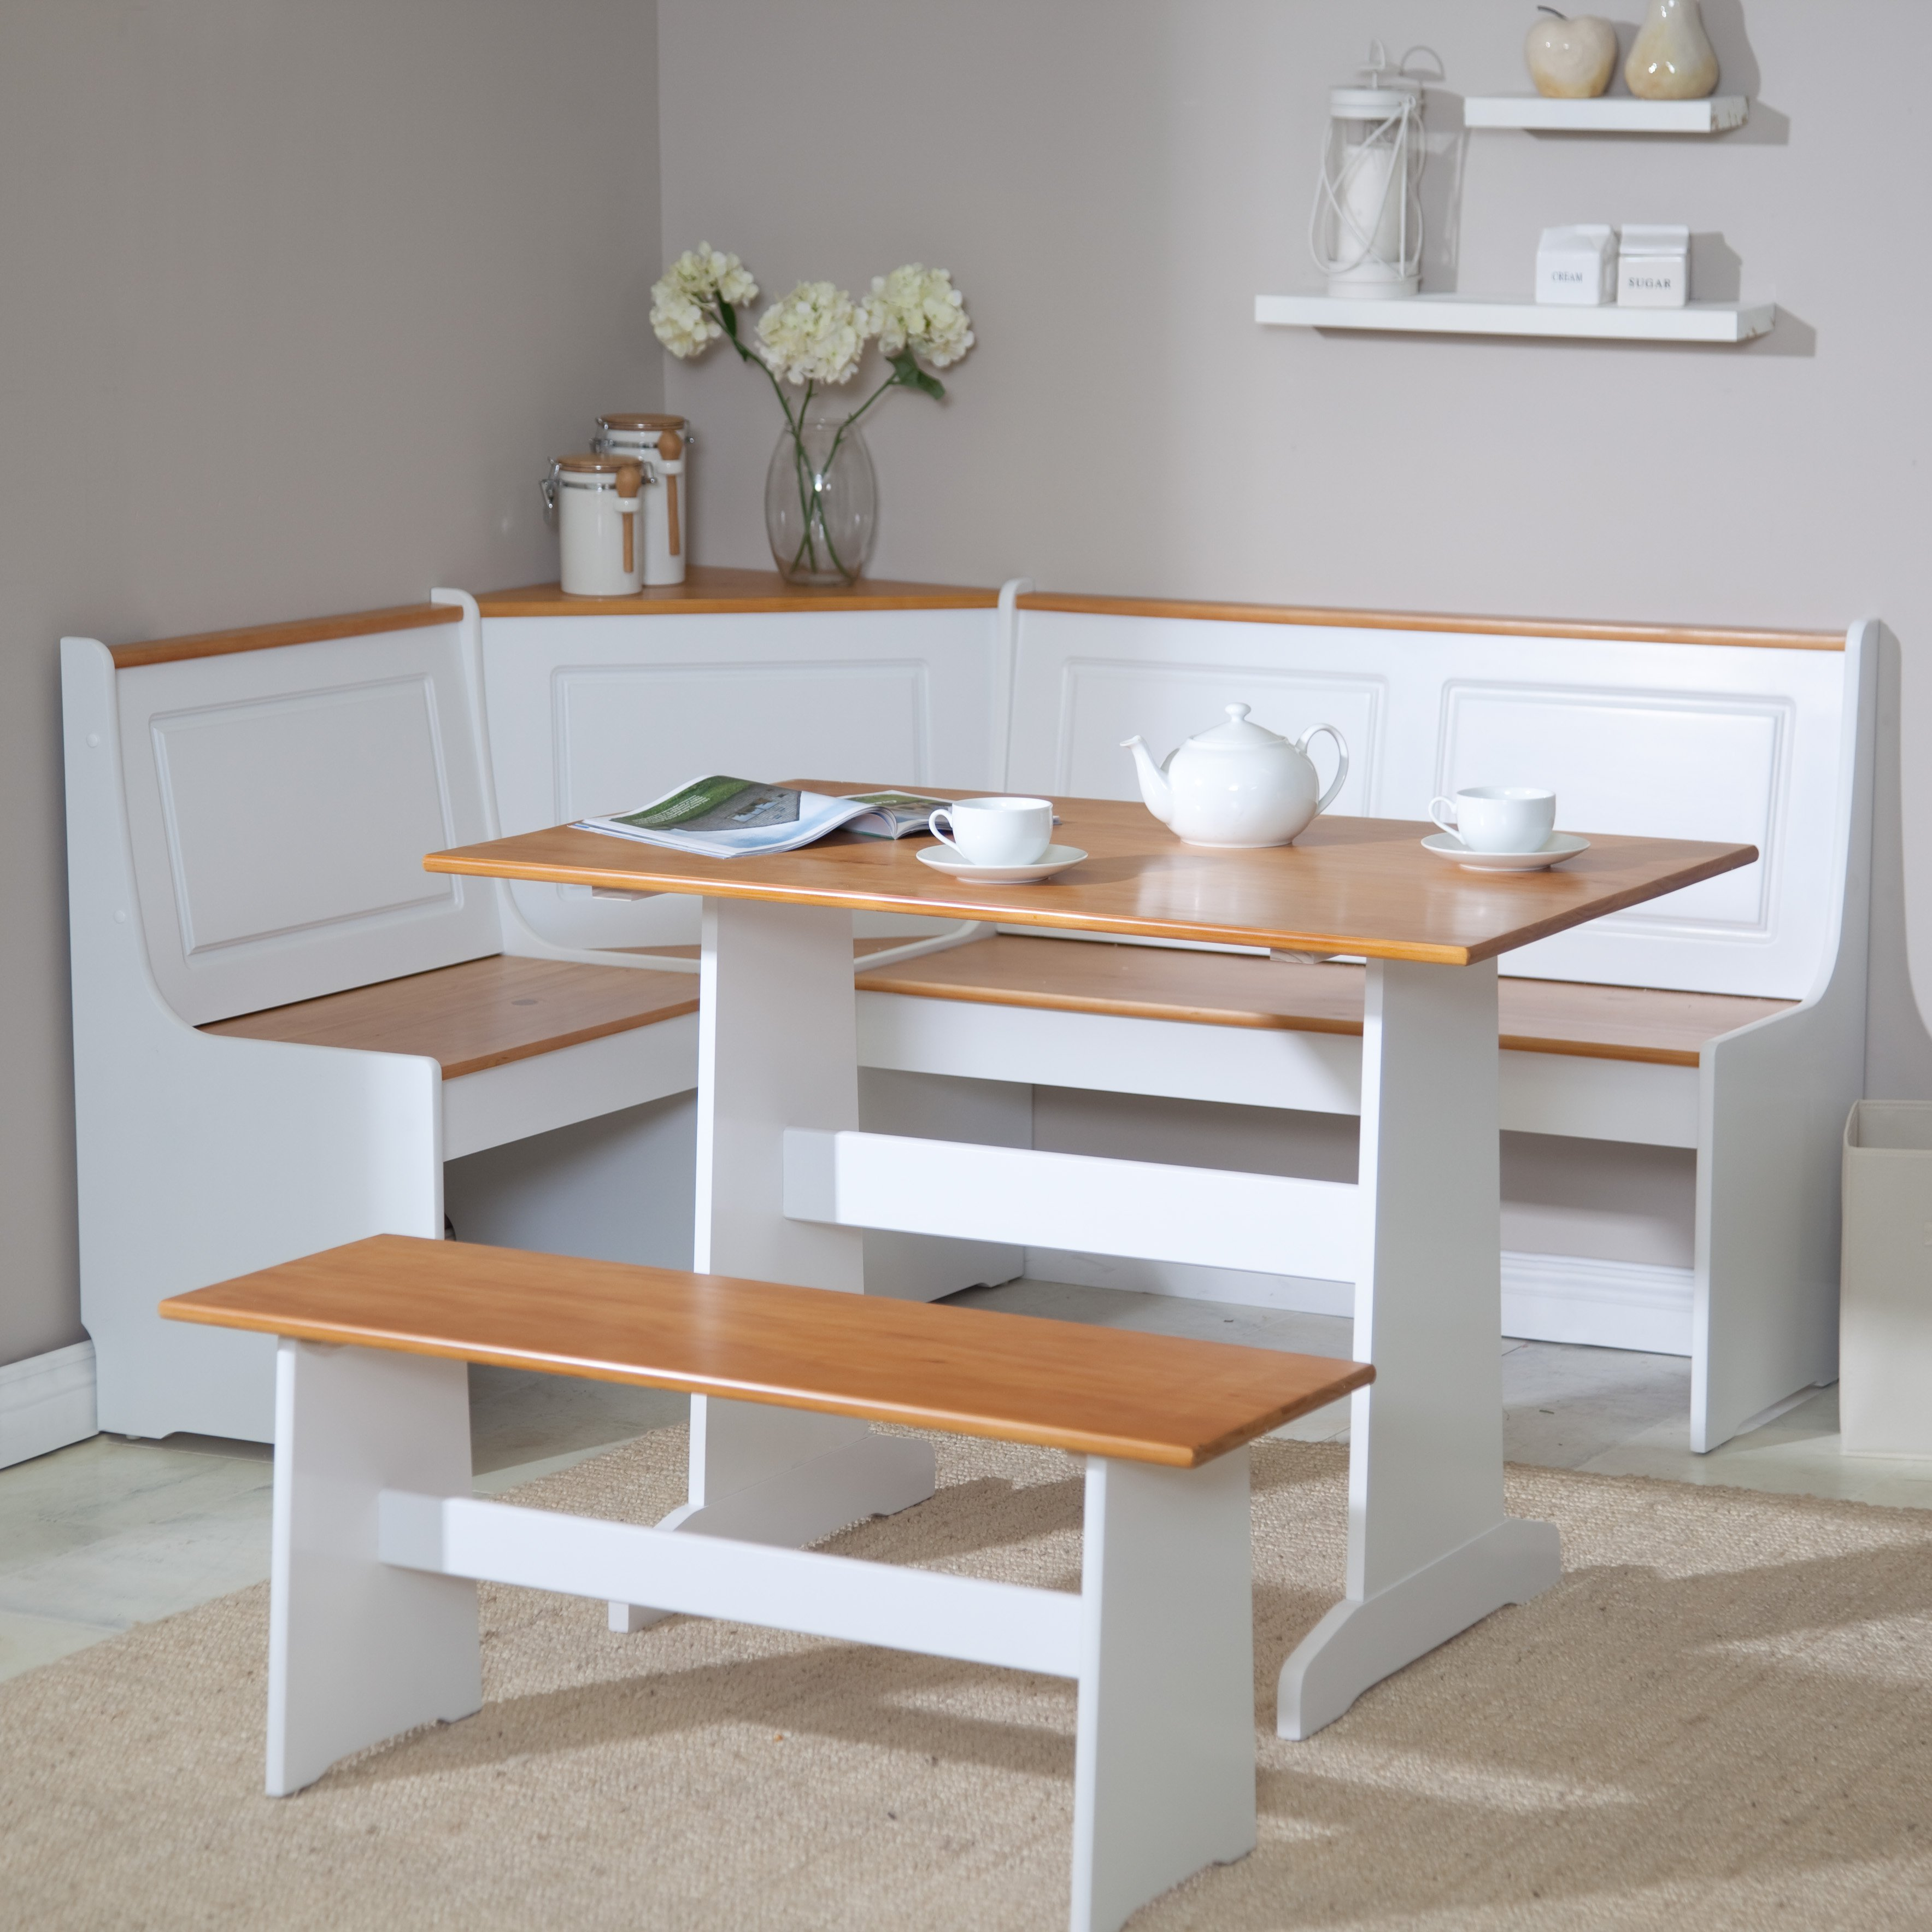 Ardmore Nook Set